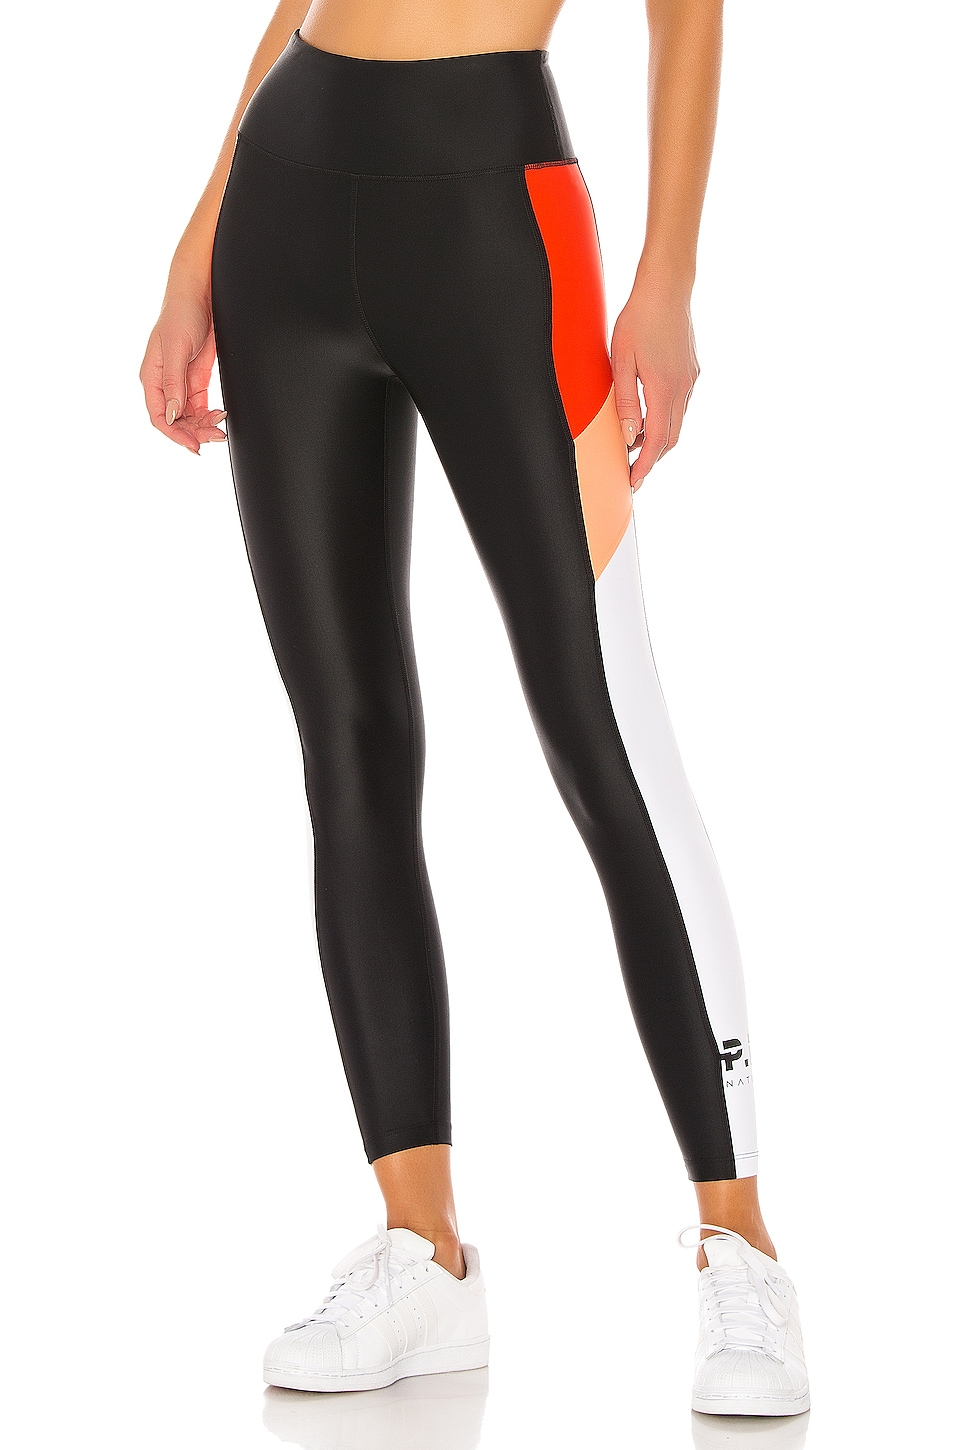 P.E Nation First Limit Legging in Black